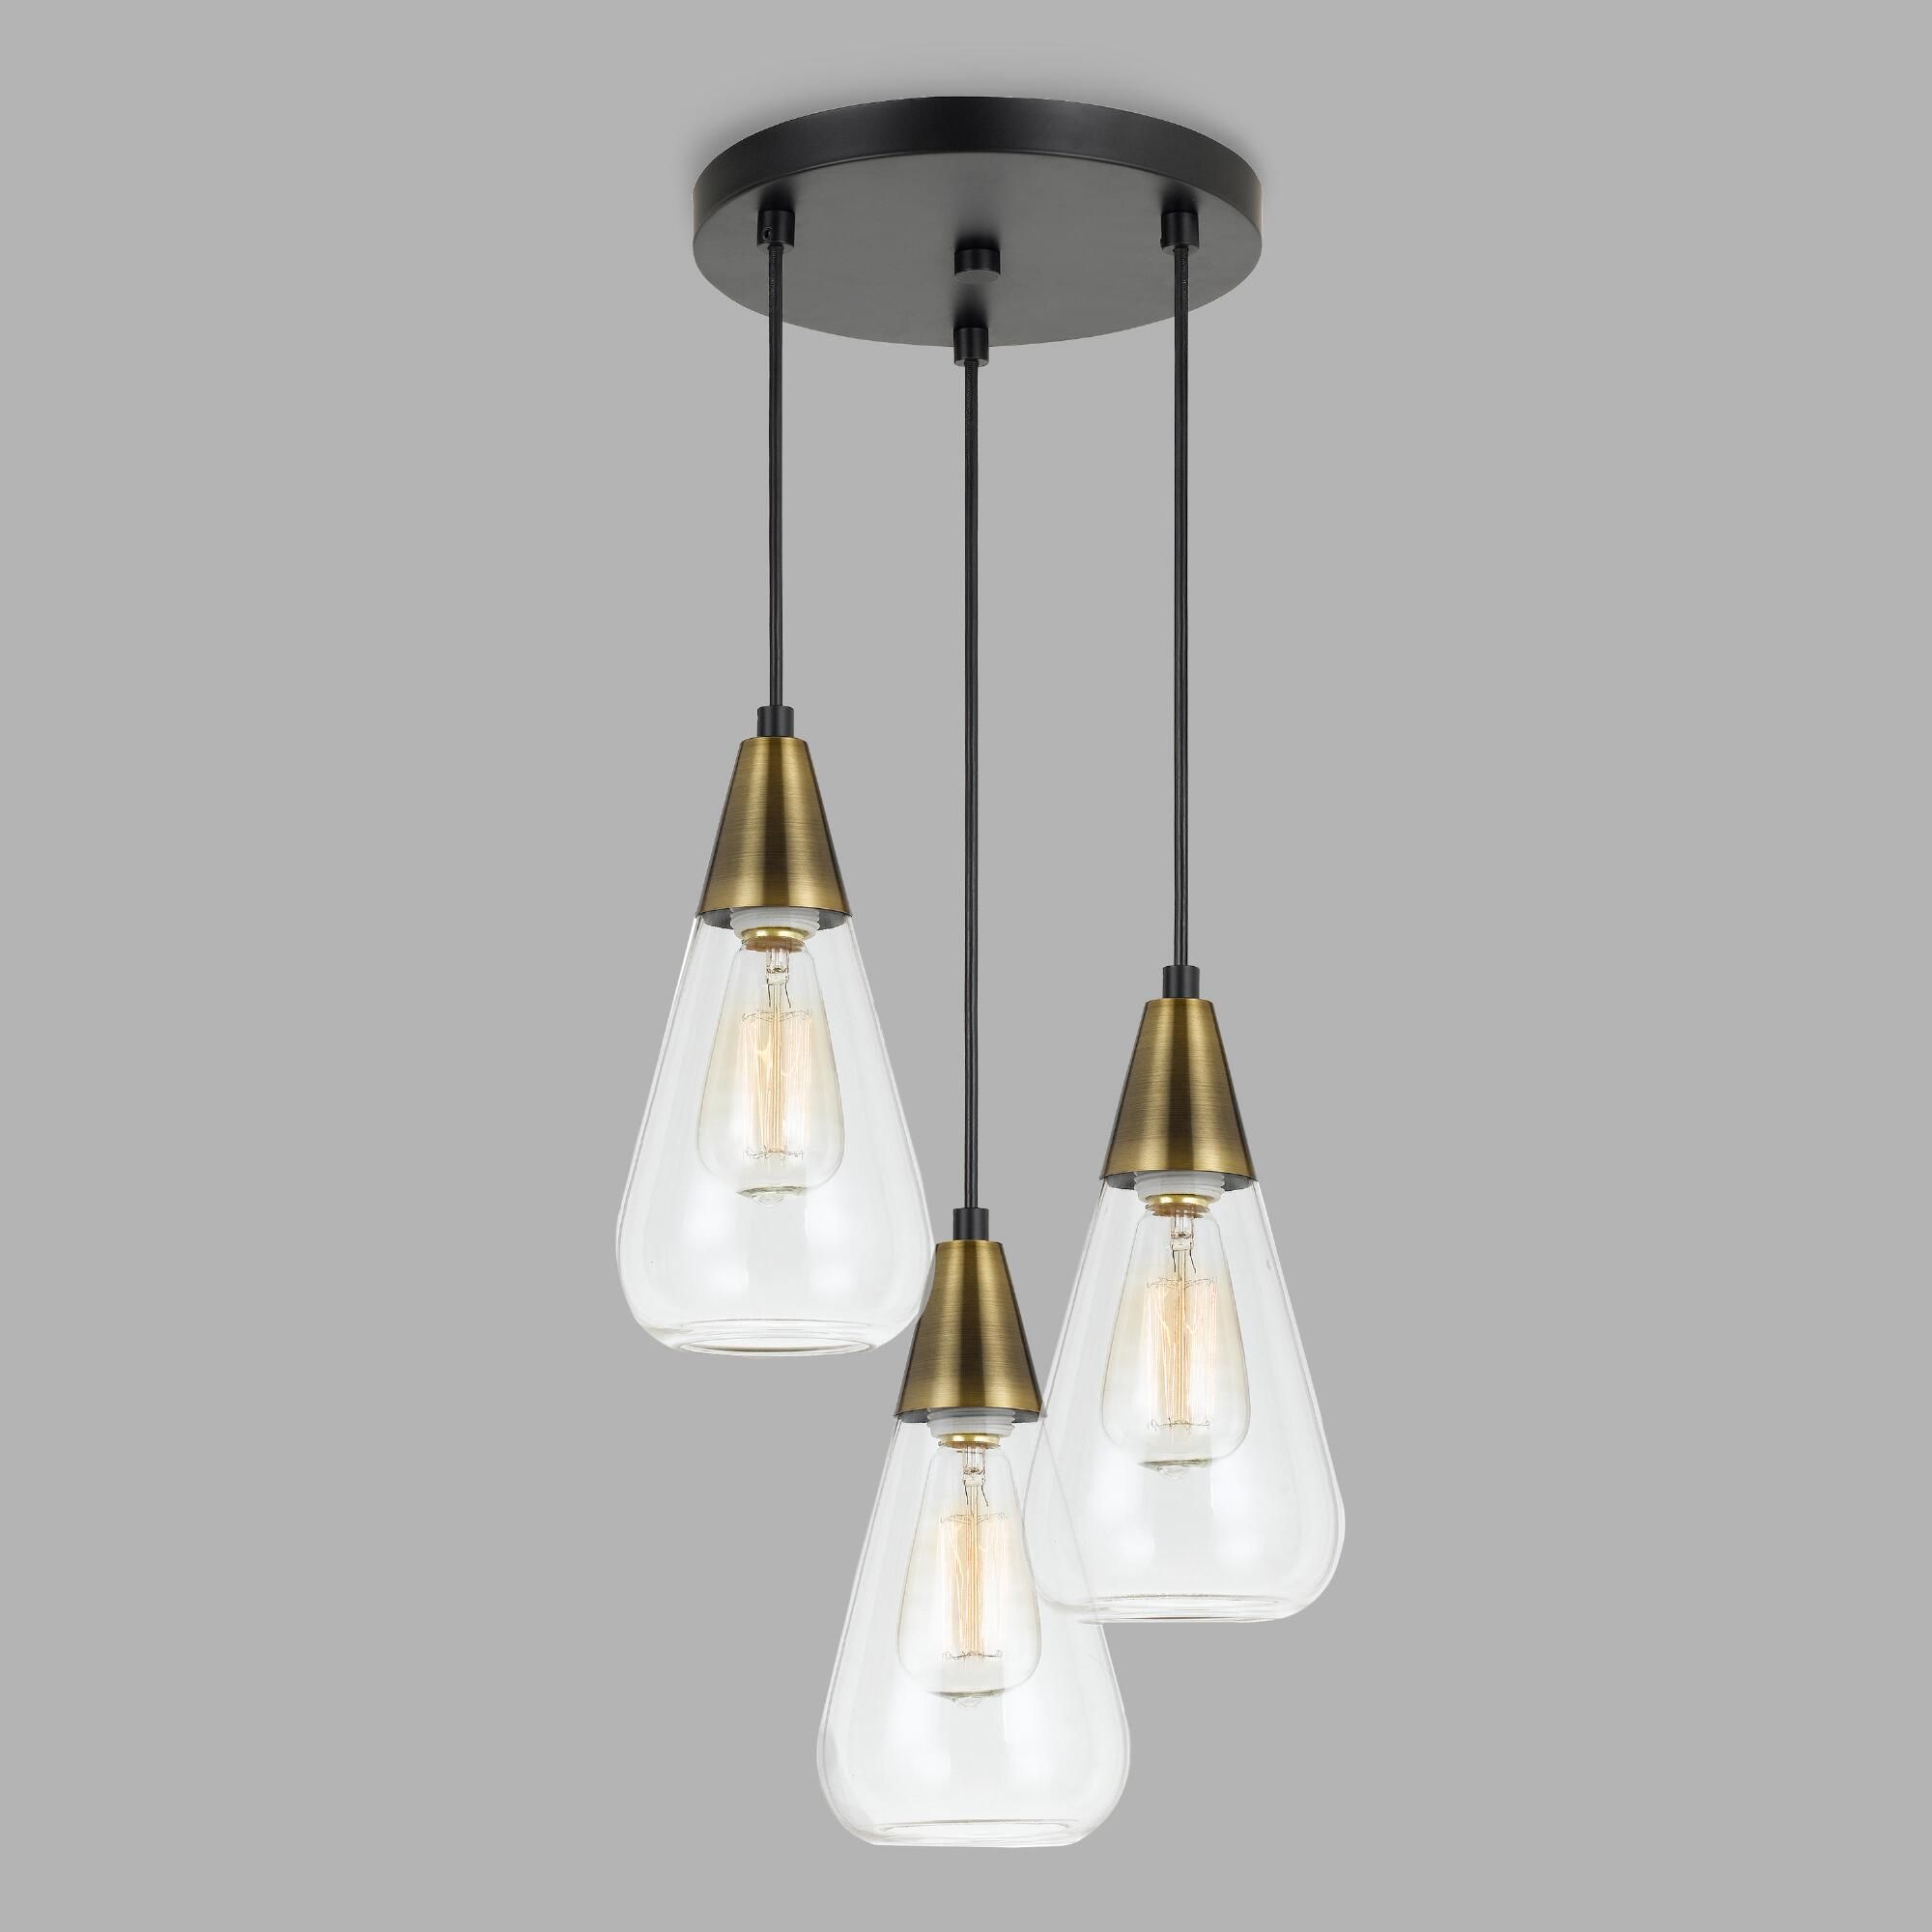 track lighting styles transitional lettuceveg our transitionalstyle chandelier features three clear glass teardrop shades at staggered heights with